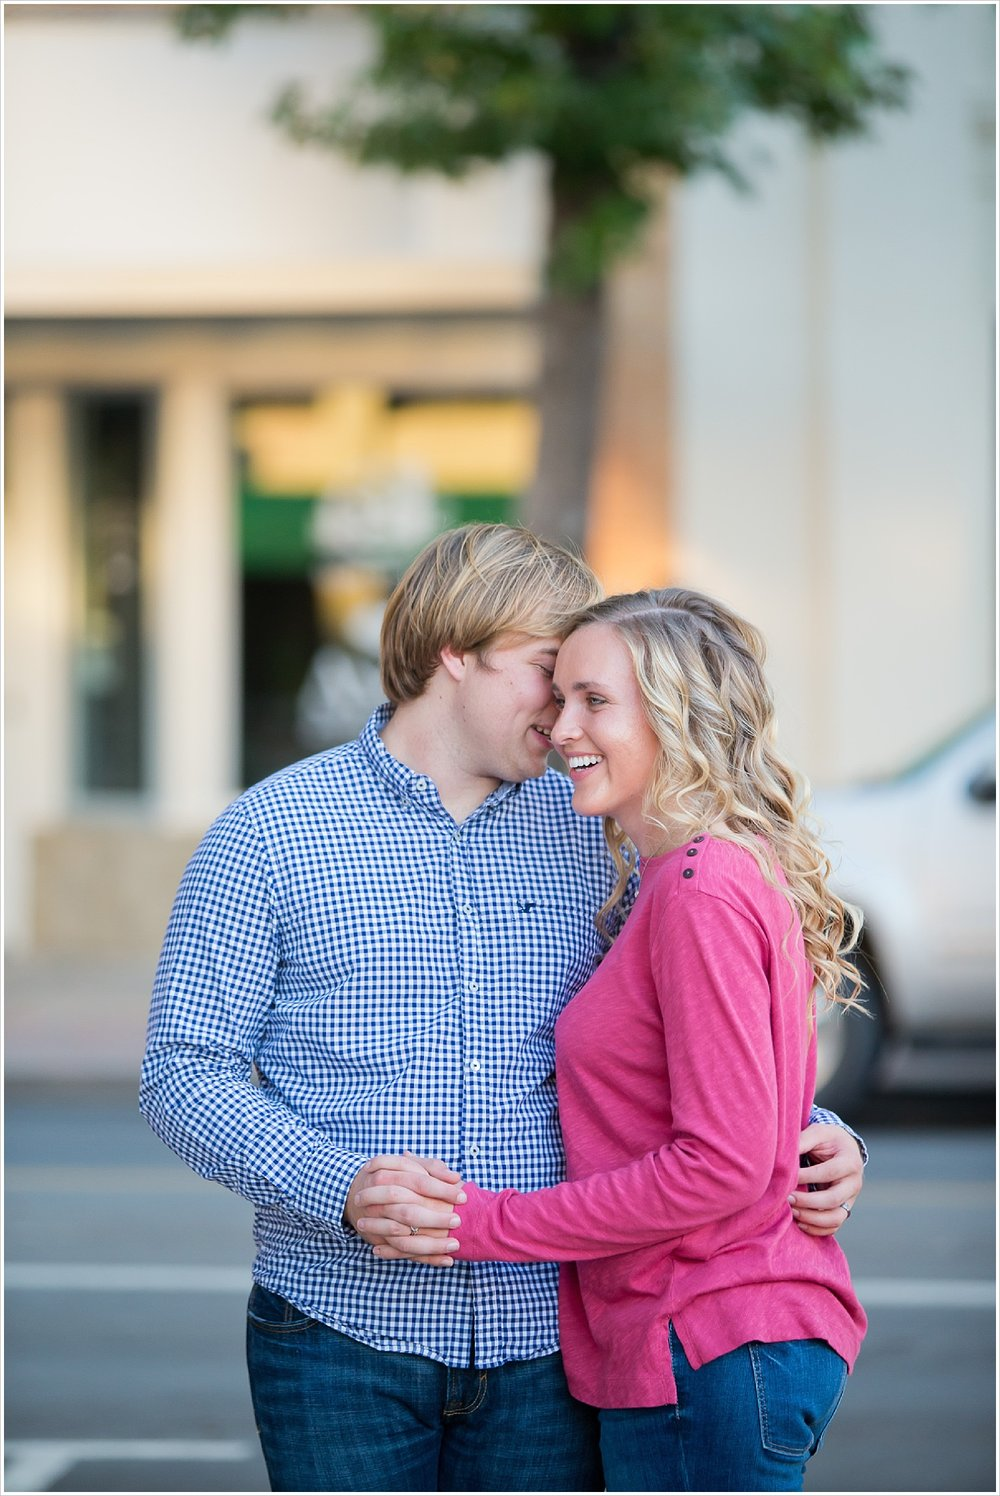 Couple's portraits downtown | Love Photography in Waco, Texas | Jason & Melaina Photography